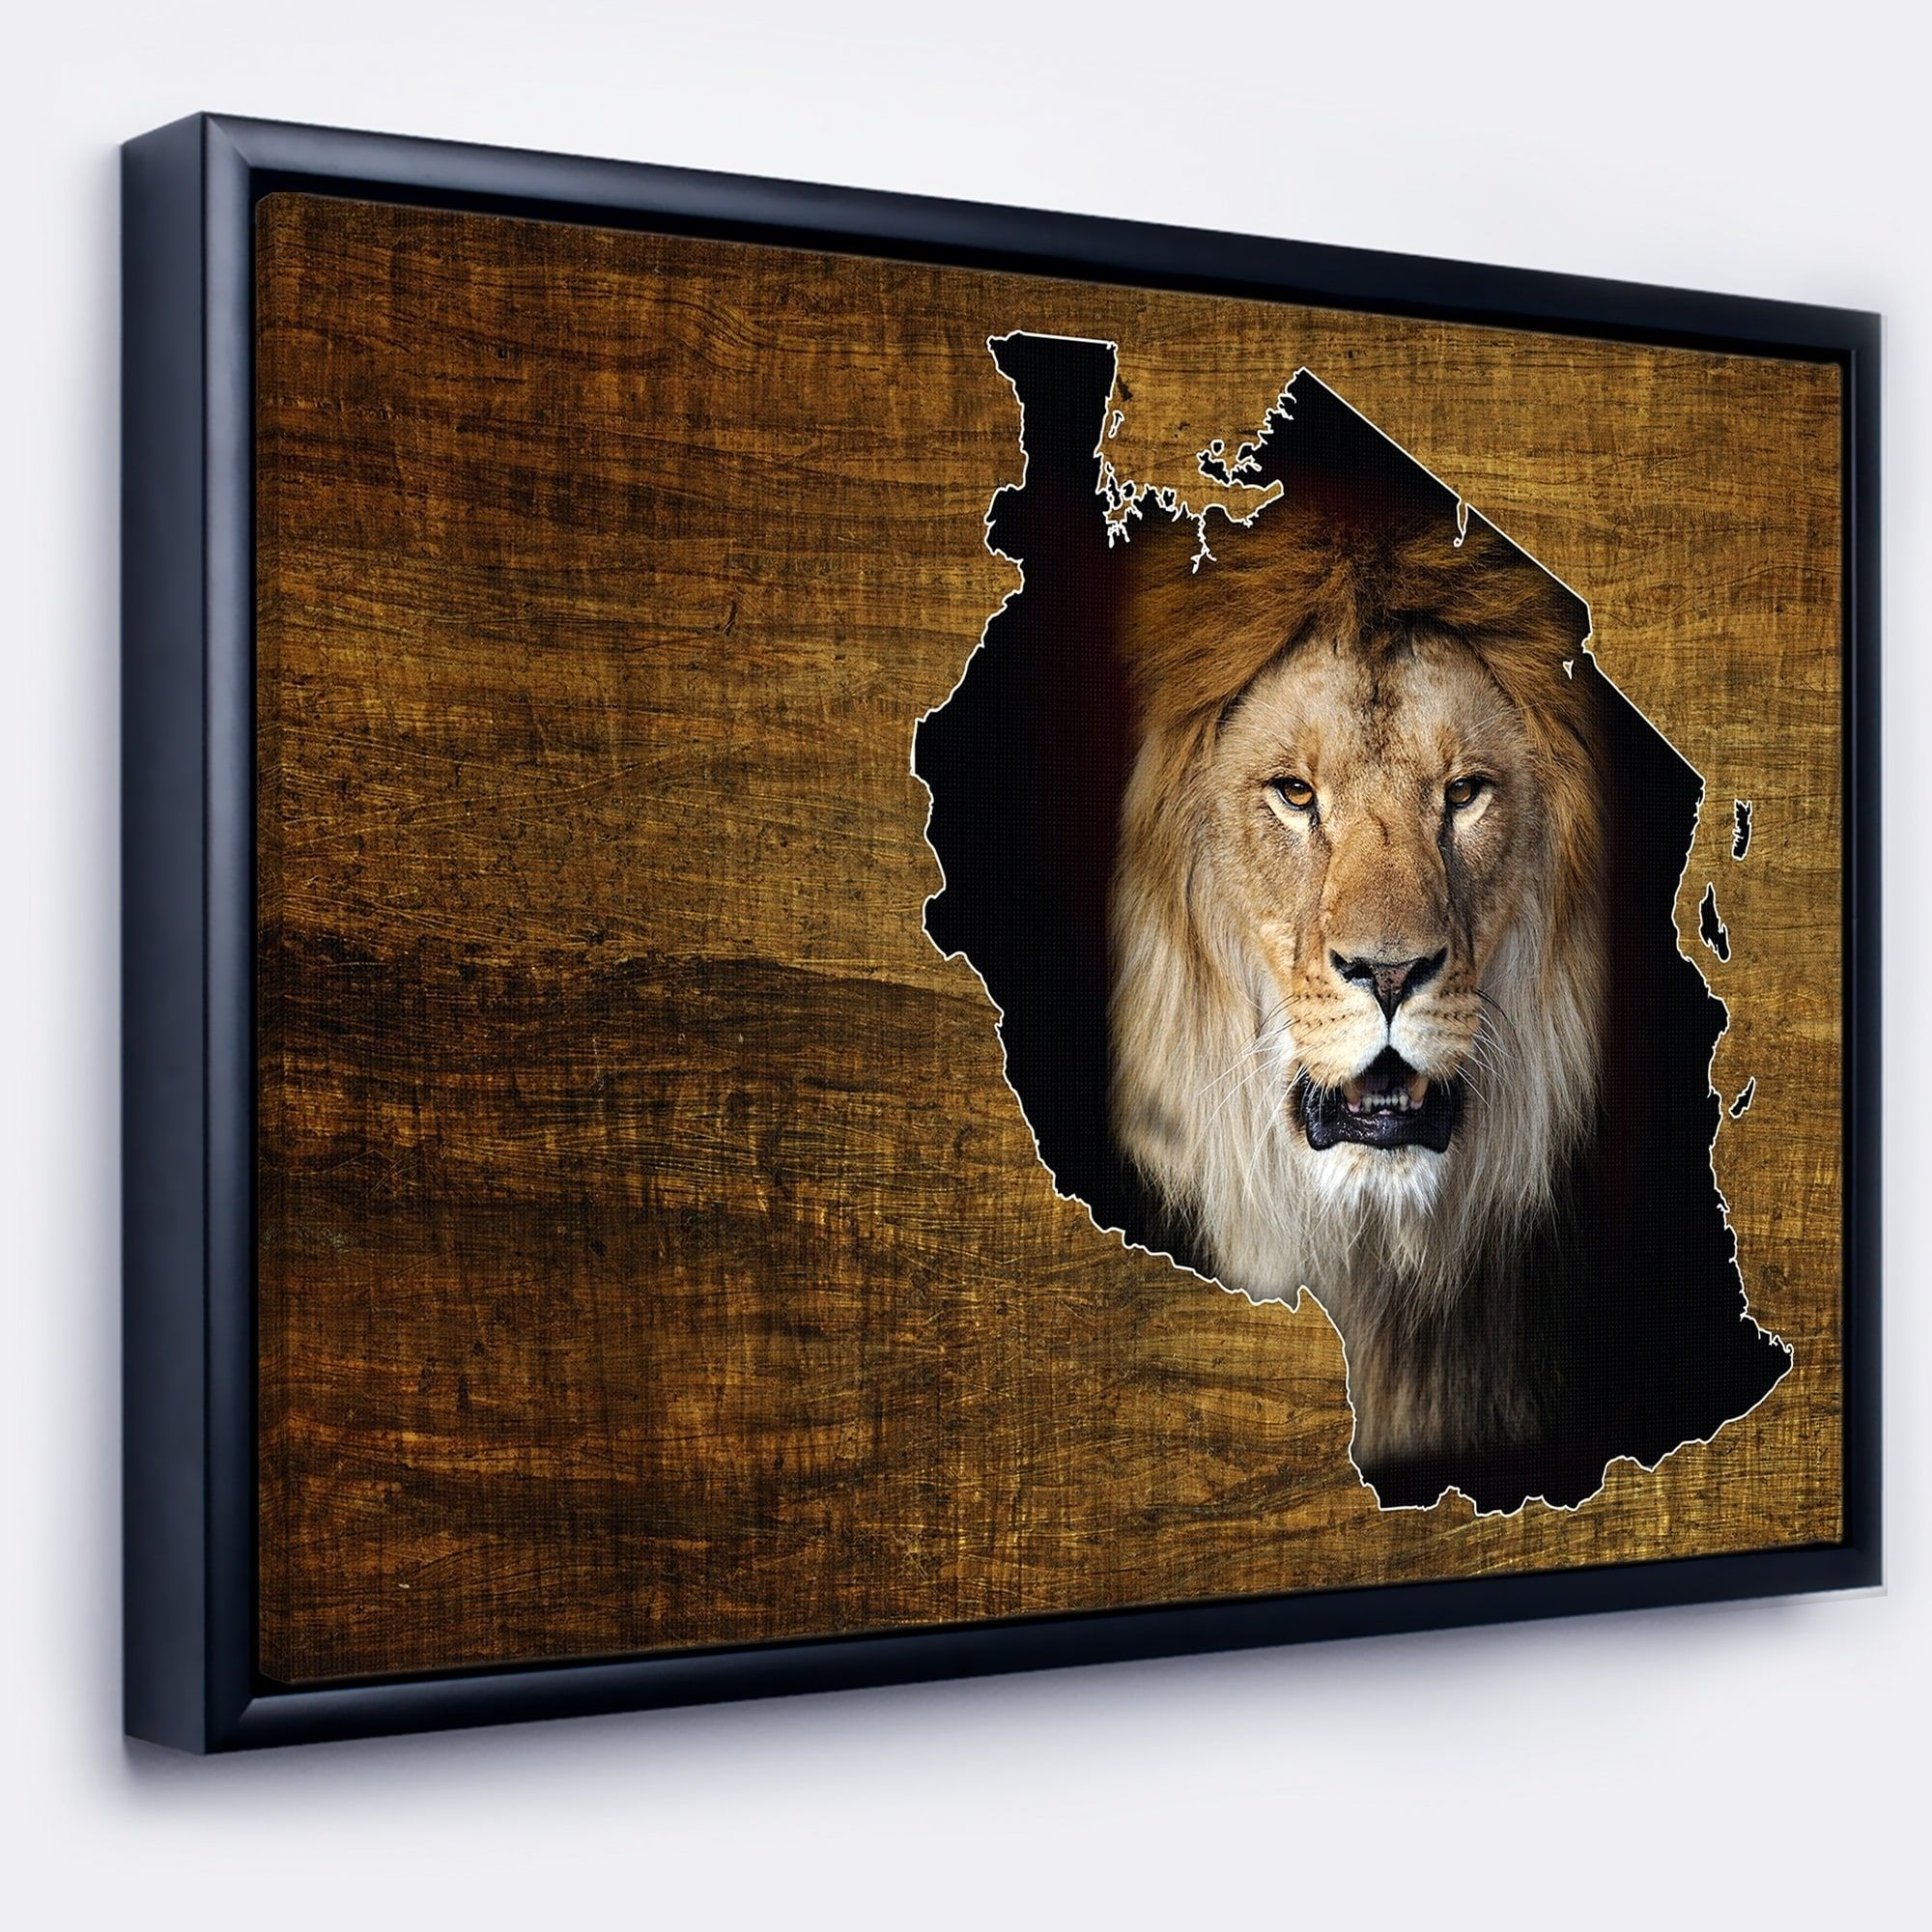 Designart Tanzania Wildlife Map Design Abstract Framed Canvas Artwork